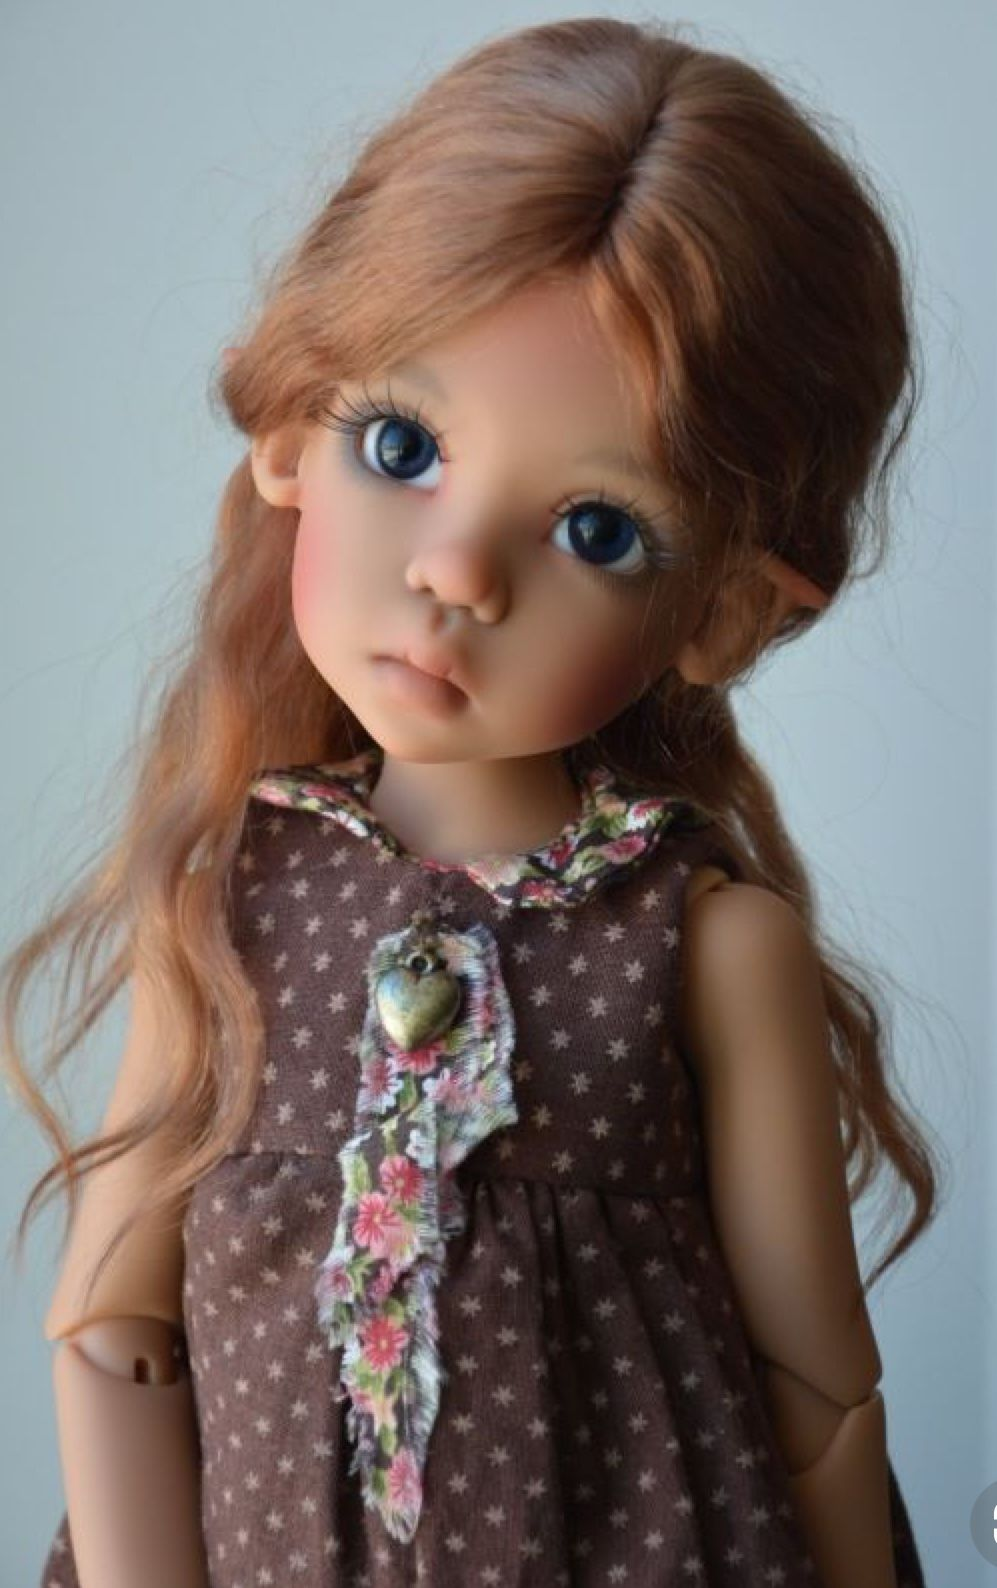 Pin by michelle nienaber on dolls pinterest dolls realistic